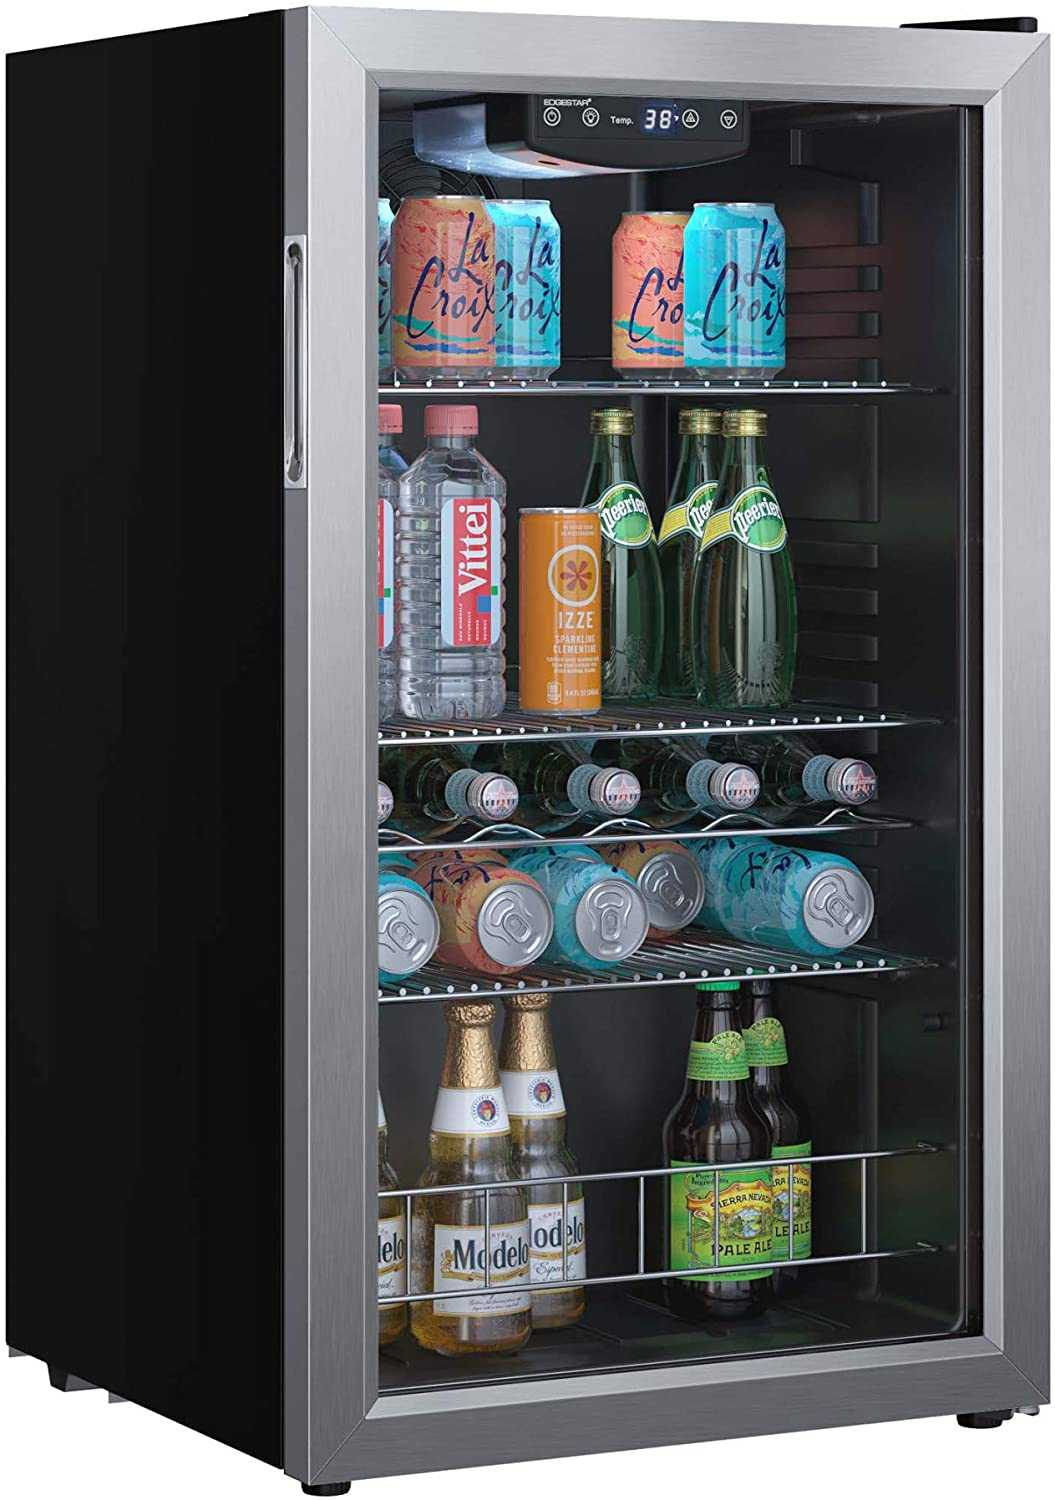 A dedicated beer cooler/fridge is a great gift for any man.